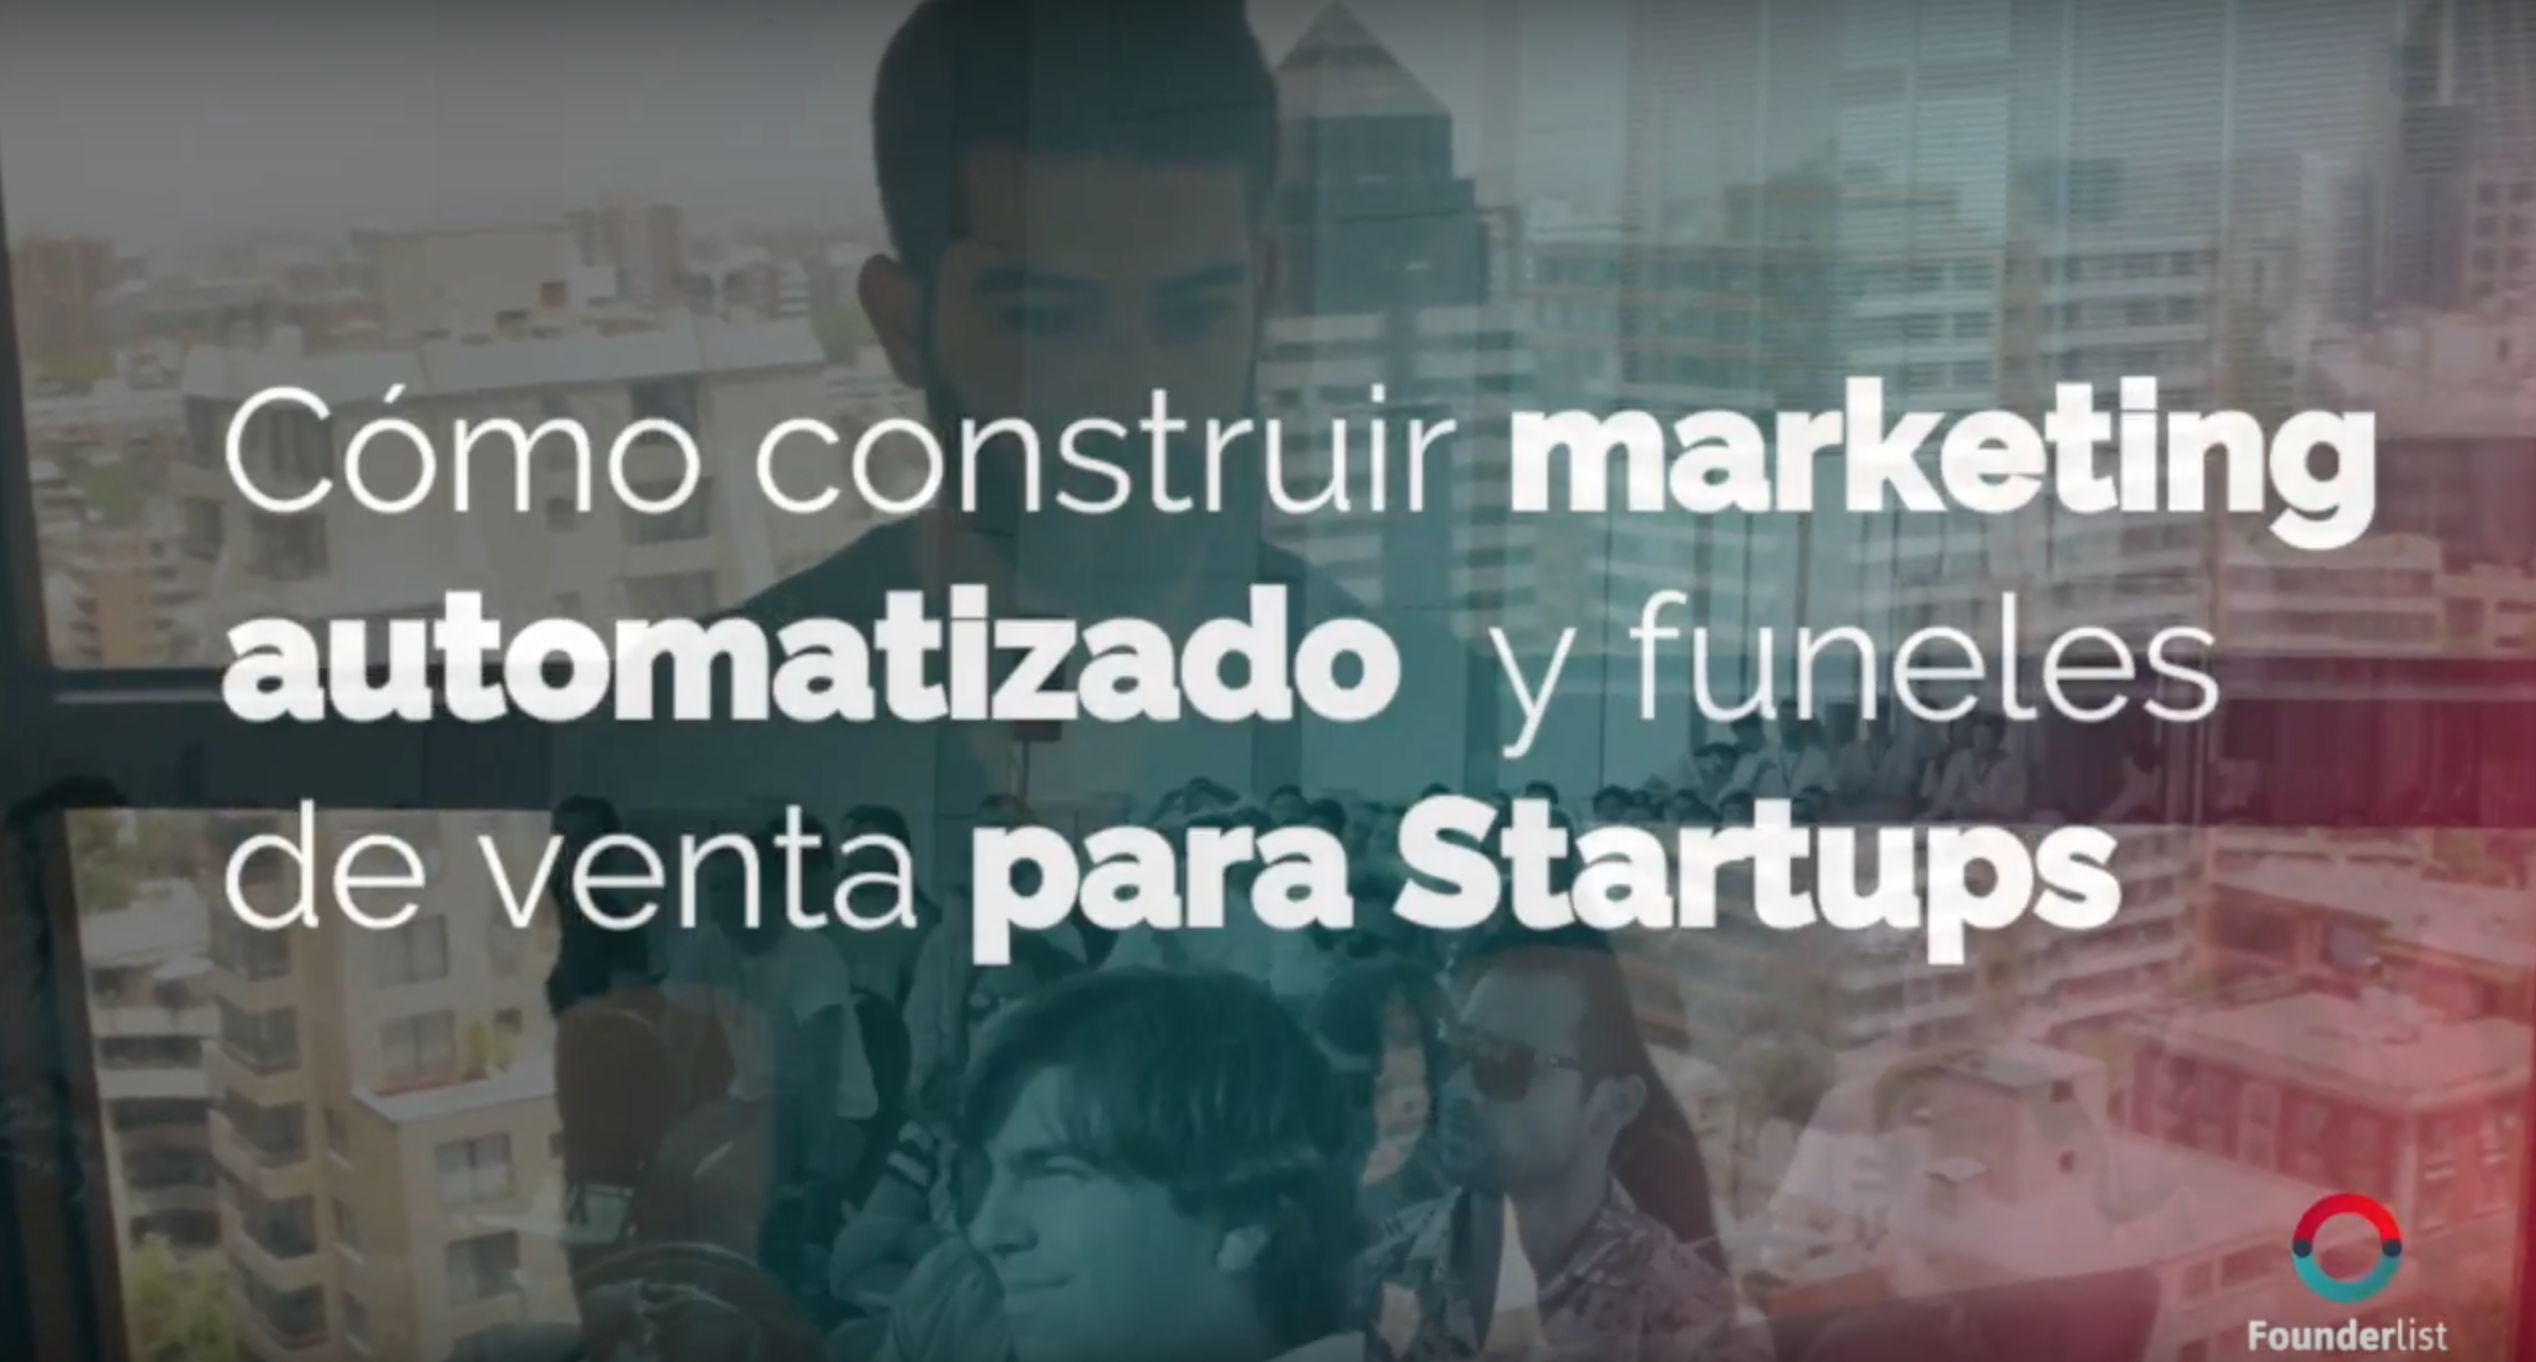 [Video 1/5] Cómo construir marketing automatizado y funnels de ventas